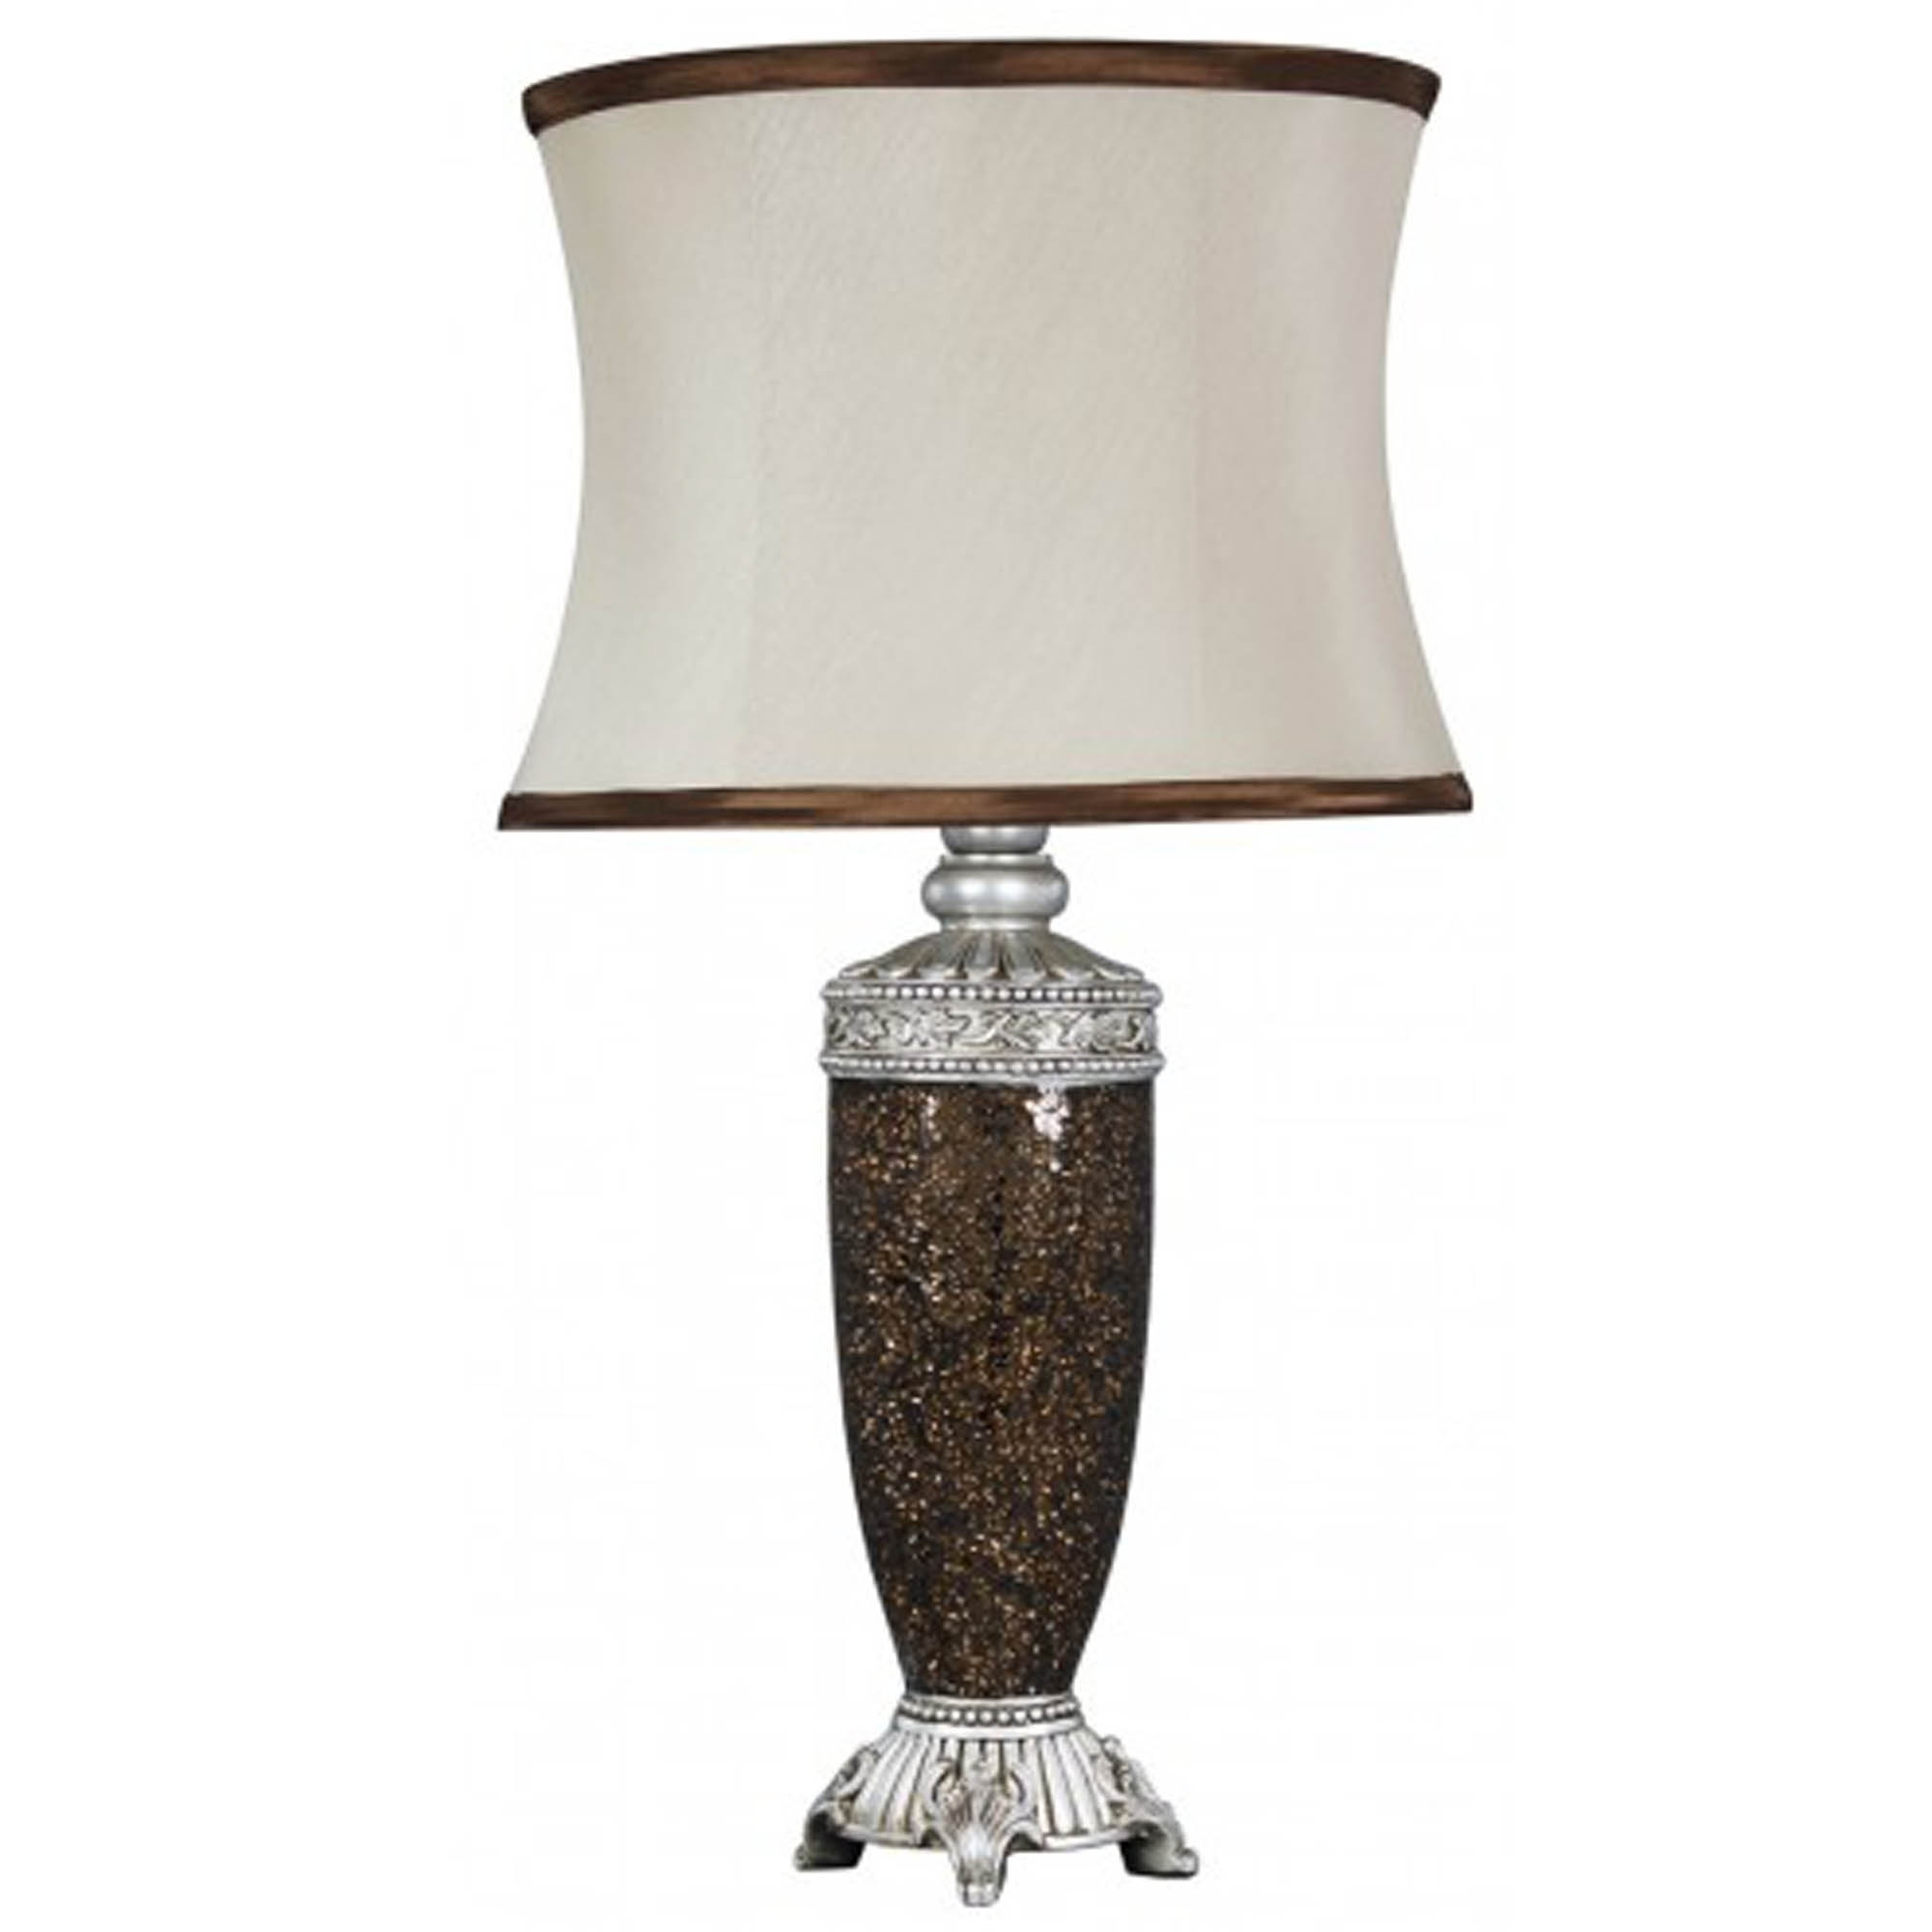 glass wonderfull lighting stained tables lamp wholesale lamps amusing table elegant shades mosaic fresh south of world